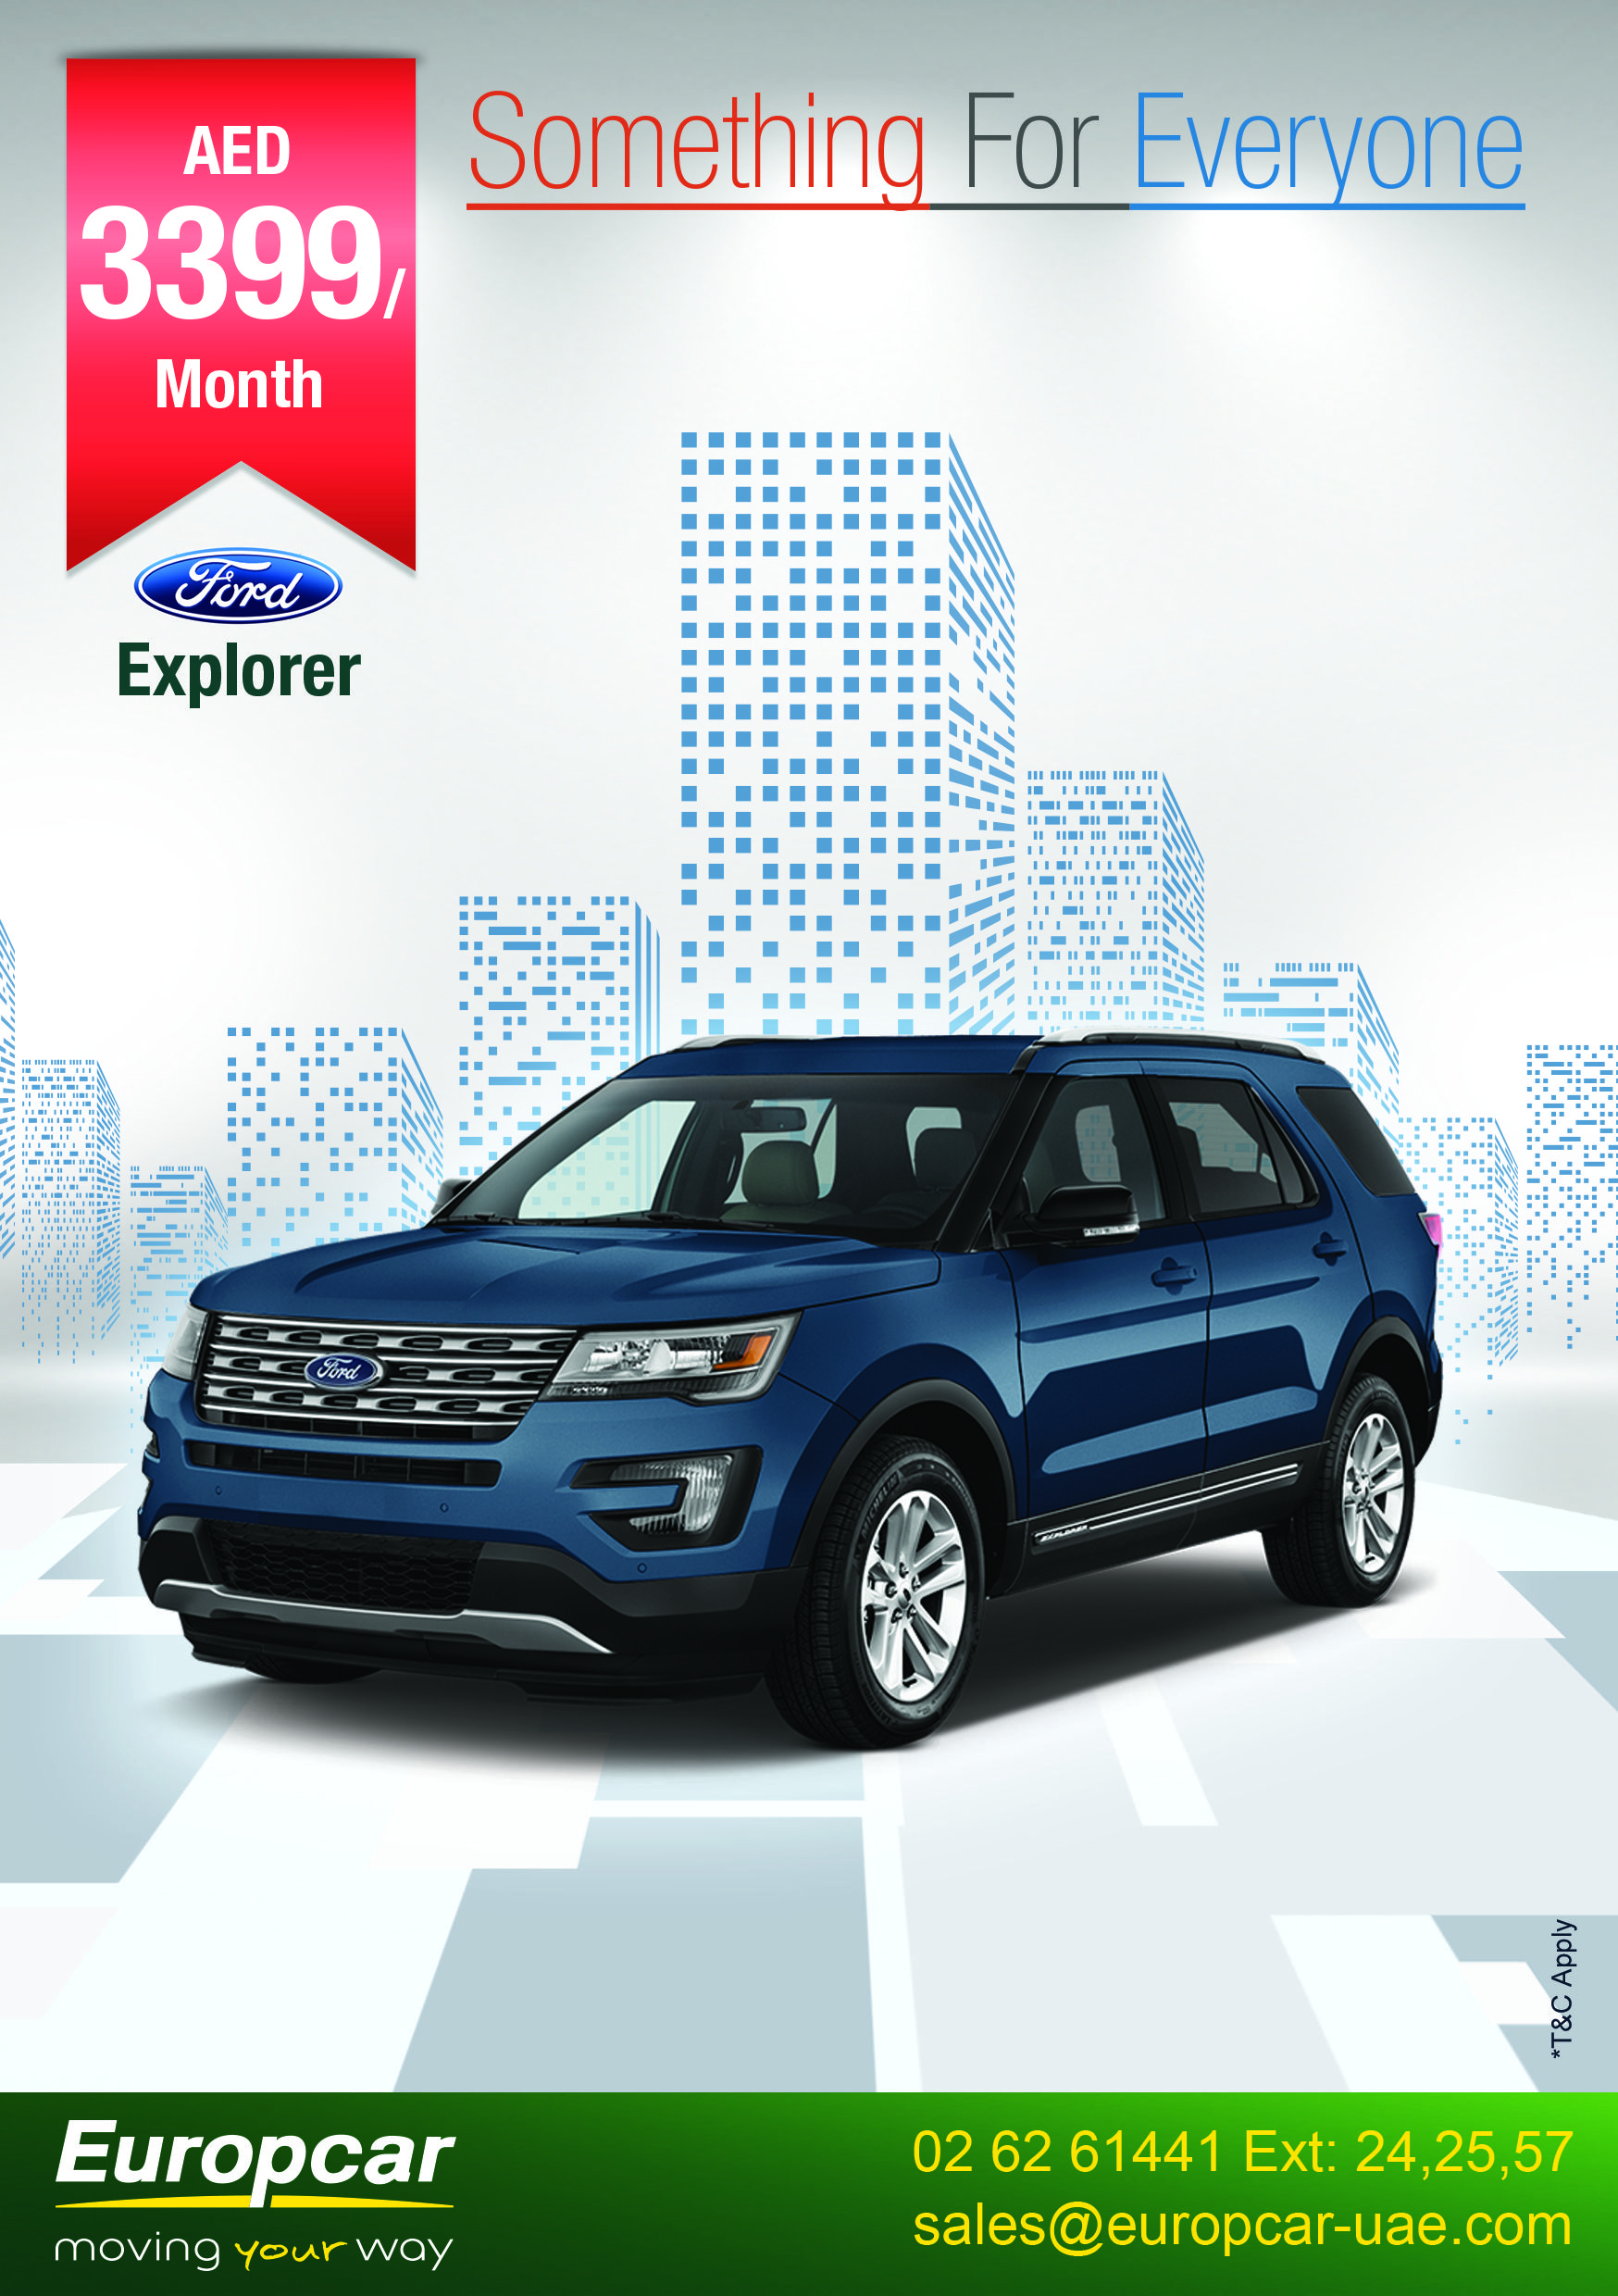 Best 25 ford explorer lease ideas only on pinterest 2016 explorer 2010 ford explorer and ford explorer